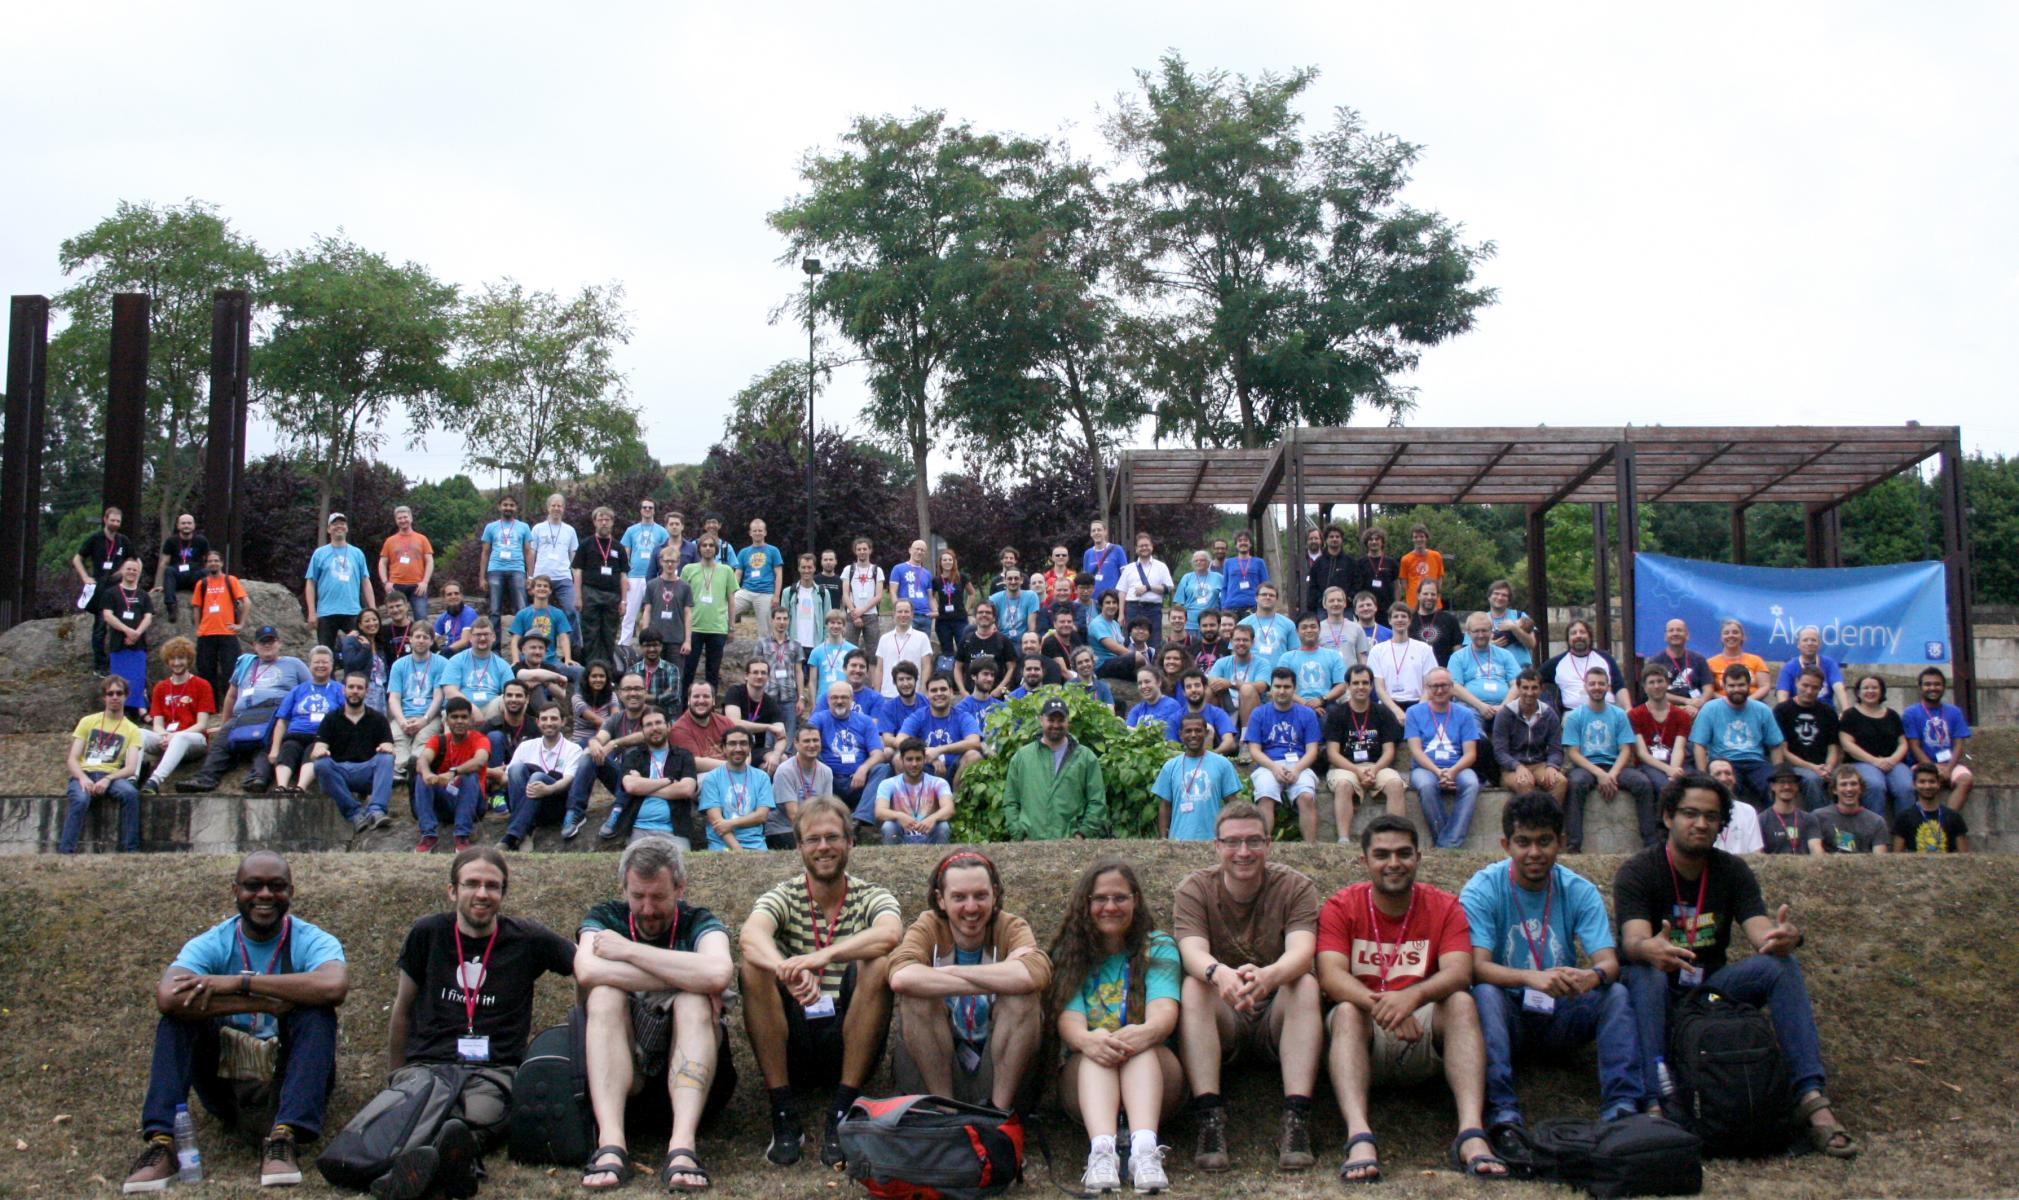 Akademy 2015 group photo